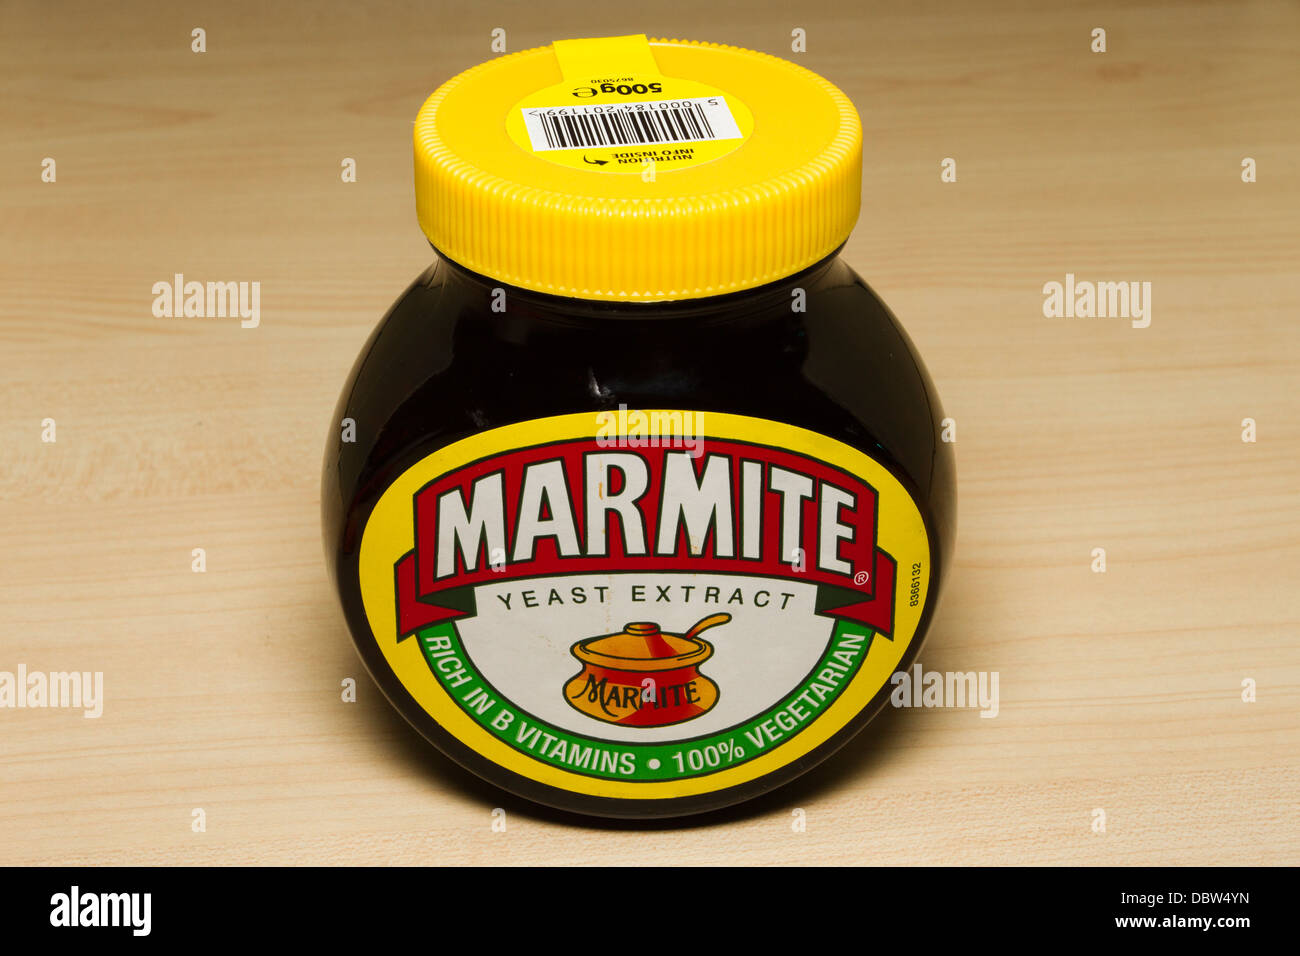 Closed jar of Marmite yeast extract on an empty kitchen table - Stock Image